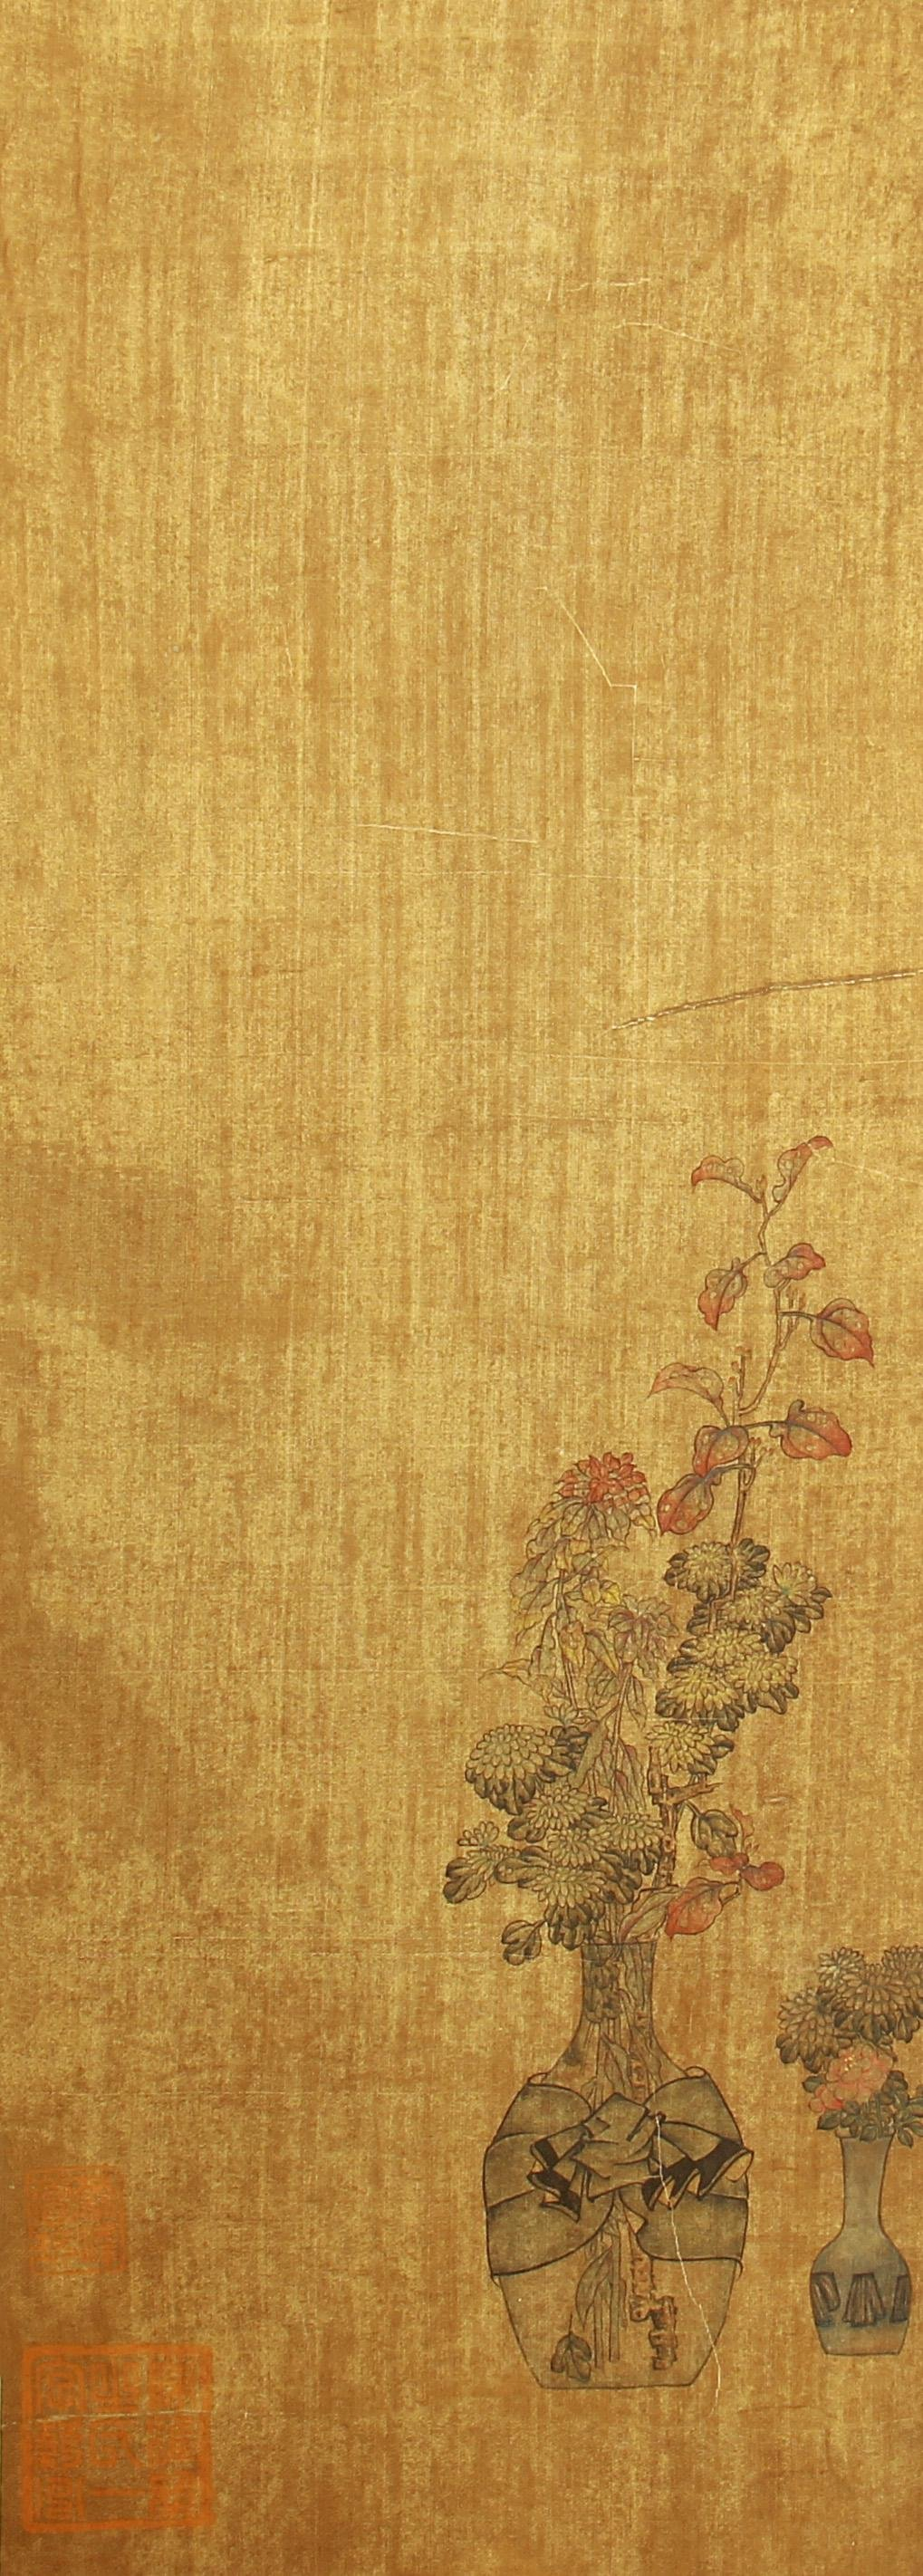 CHINESE SILK HANDSCROLL PAINTING OF FLOWERS BLOSSOMMING